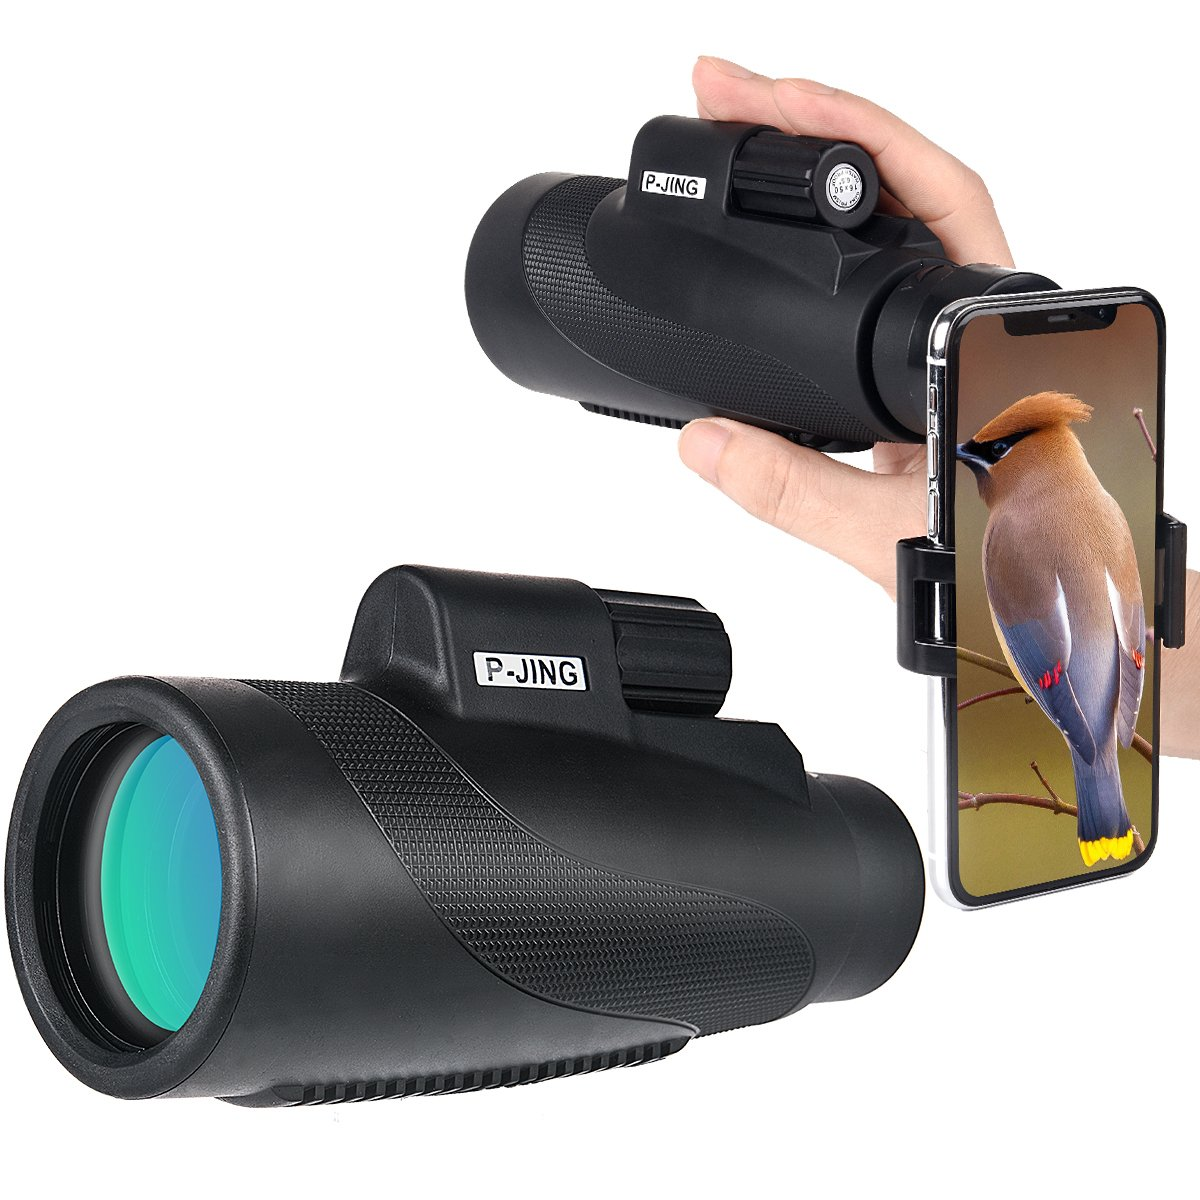 Monocular Telescopes 16X50 High Powered Monocular with Quick Smartphone Holder - Waterproof Fog-proof Shockproof Scope -BAK4 Prism FMC for Bird Watching Hunting Camping Travelling Wildlife Secenery by by P-JING